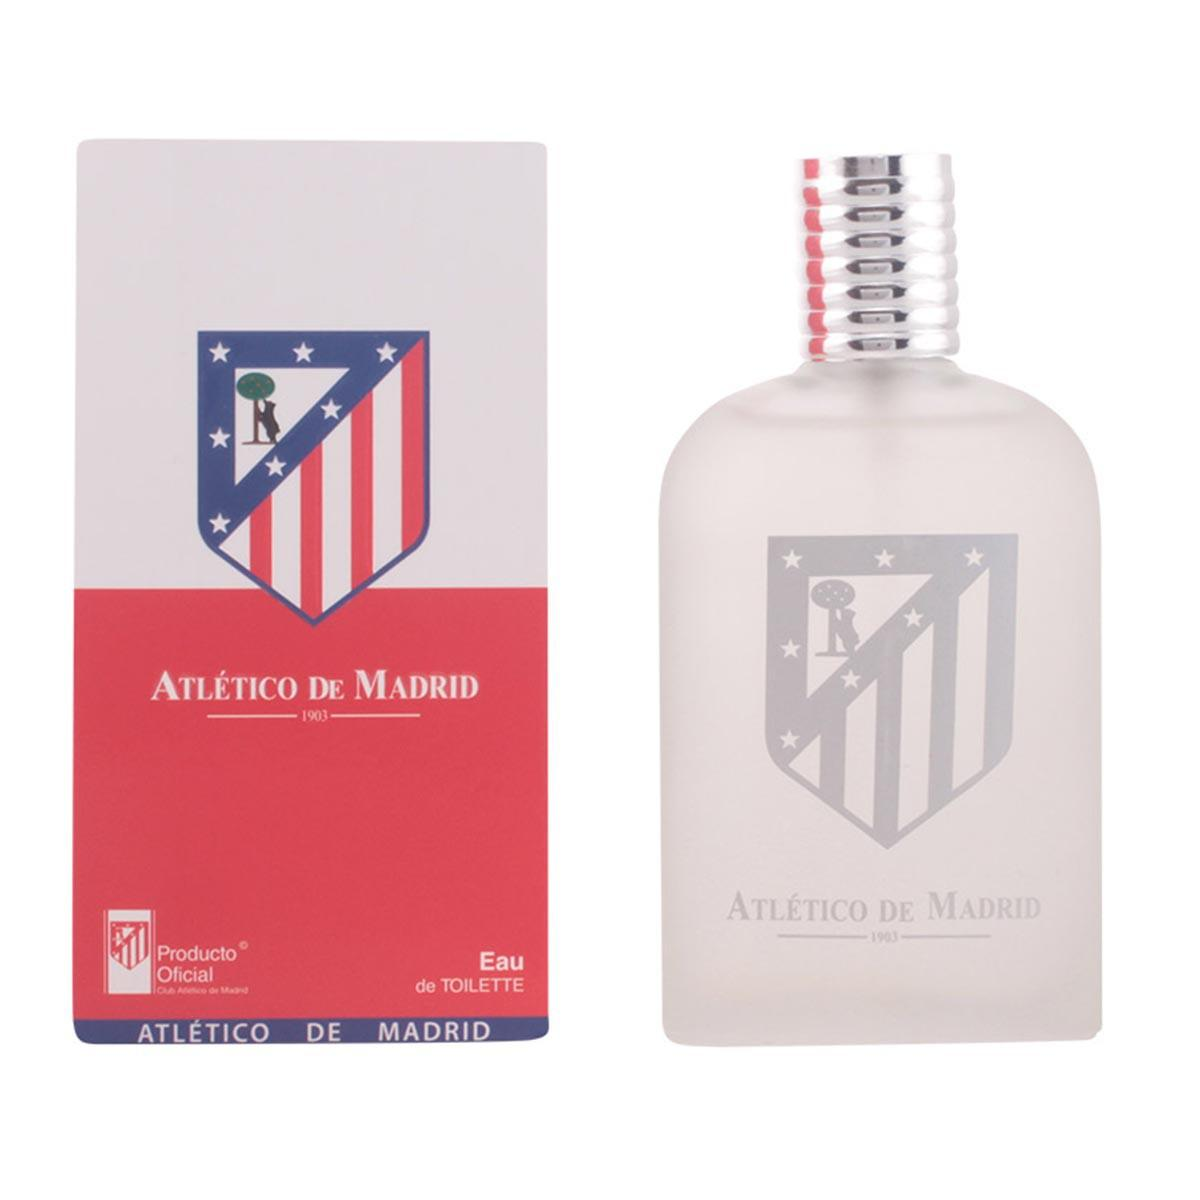 Consumo Atletico De Madrid Eau De Toilette 100 ml